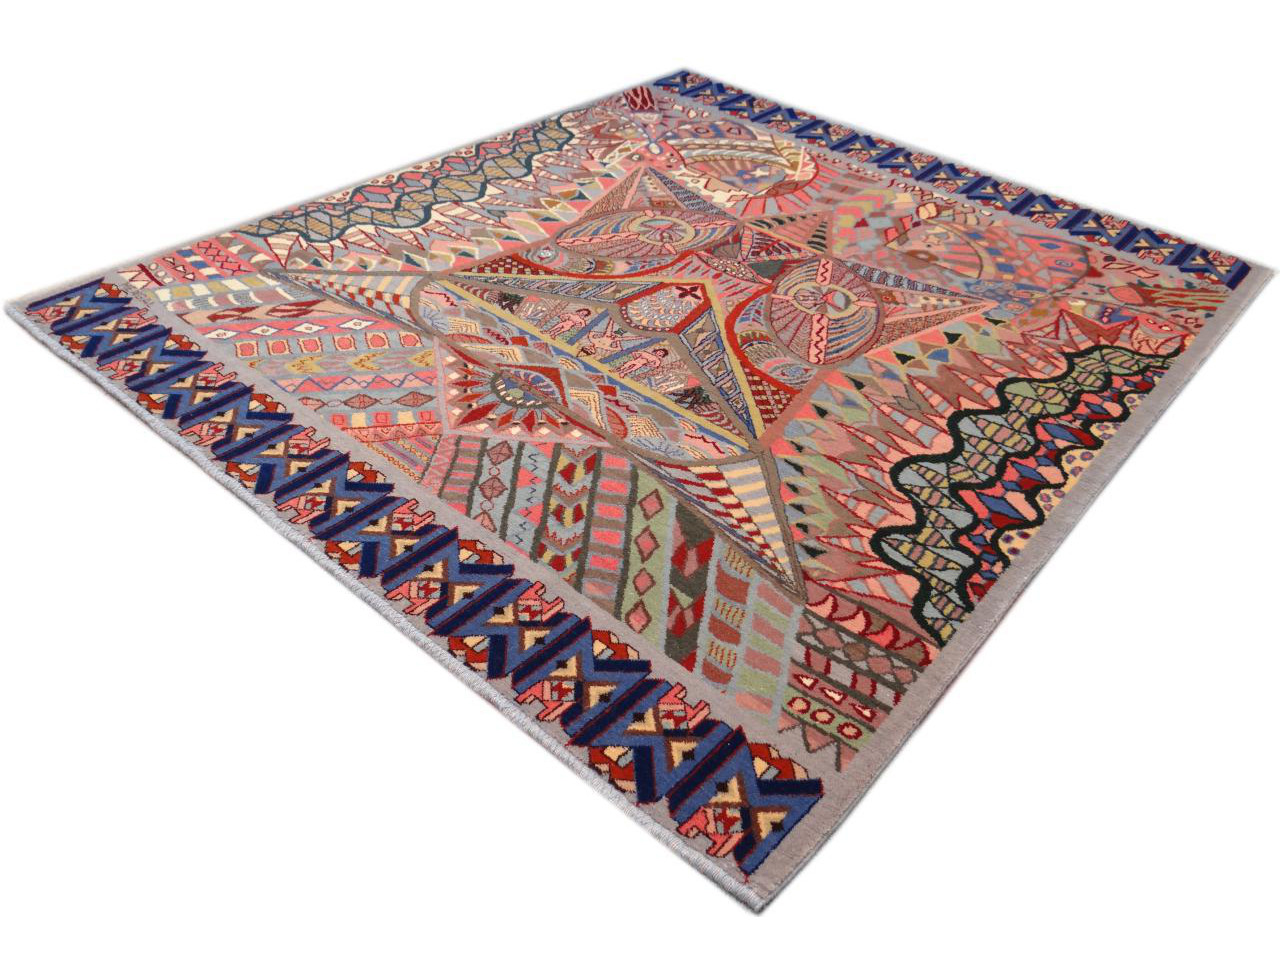 39 paradise 39 of belgian creation tapis luxury n 2168 177x152cm - Tapis contemporain belgique ...